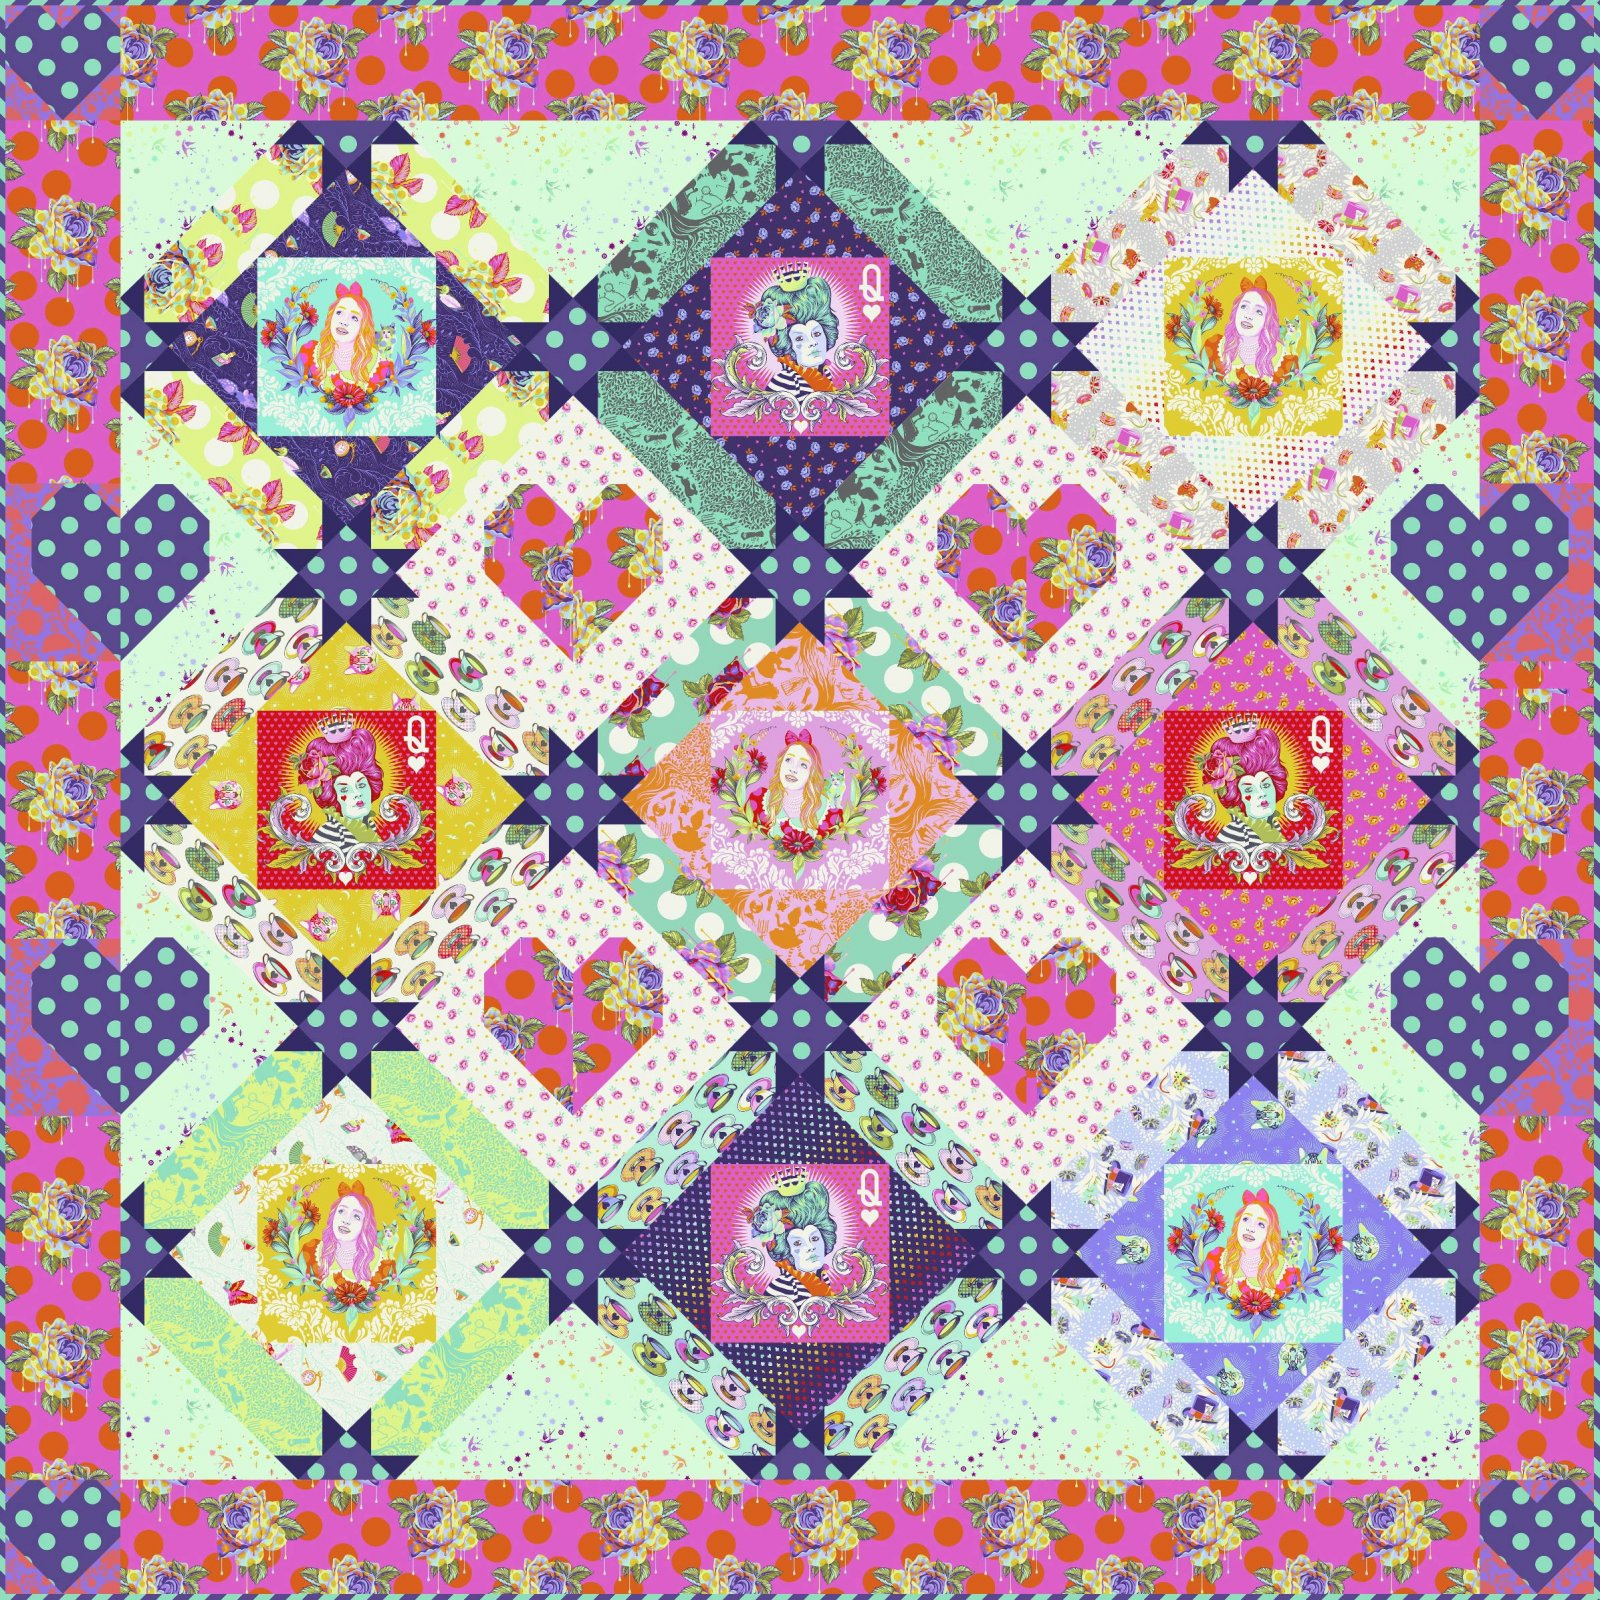 PRE-ORDER Queen of Hearts Quilt Kit